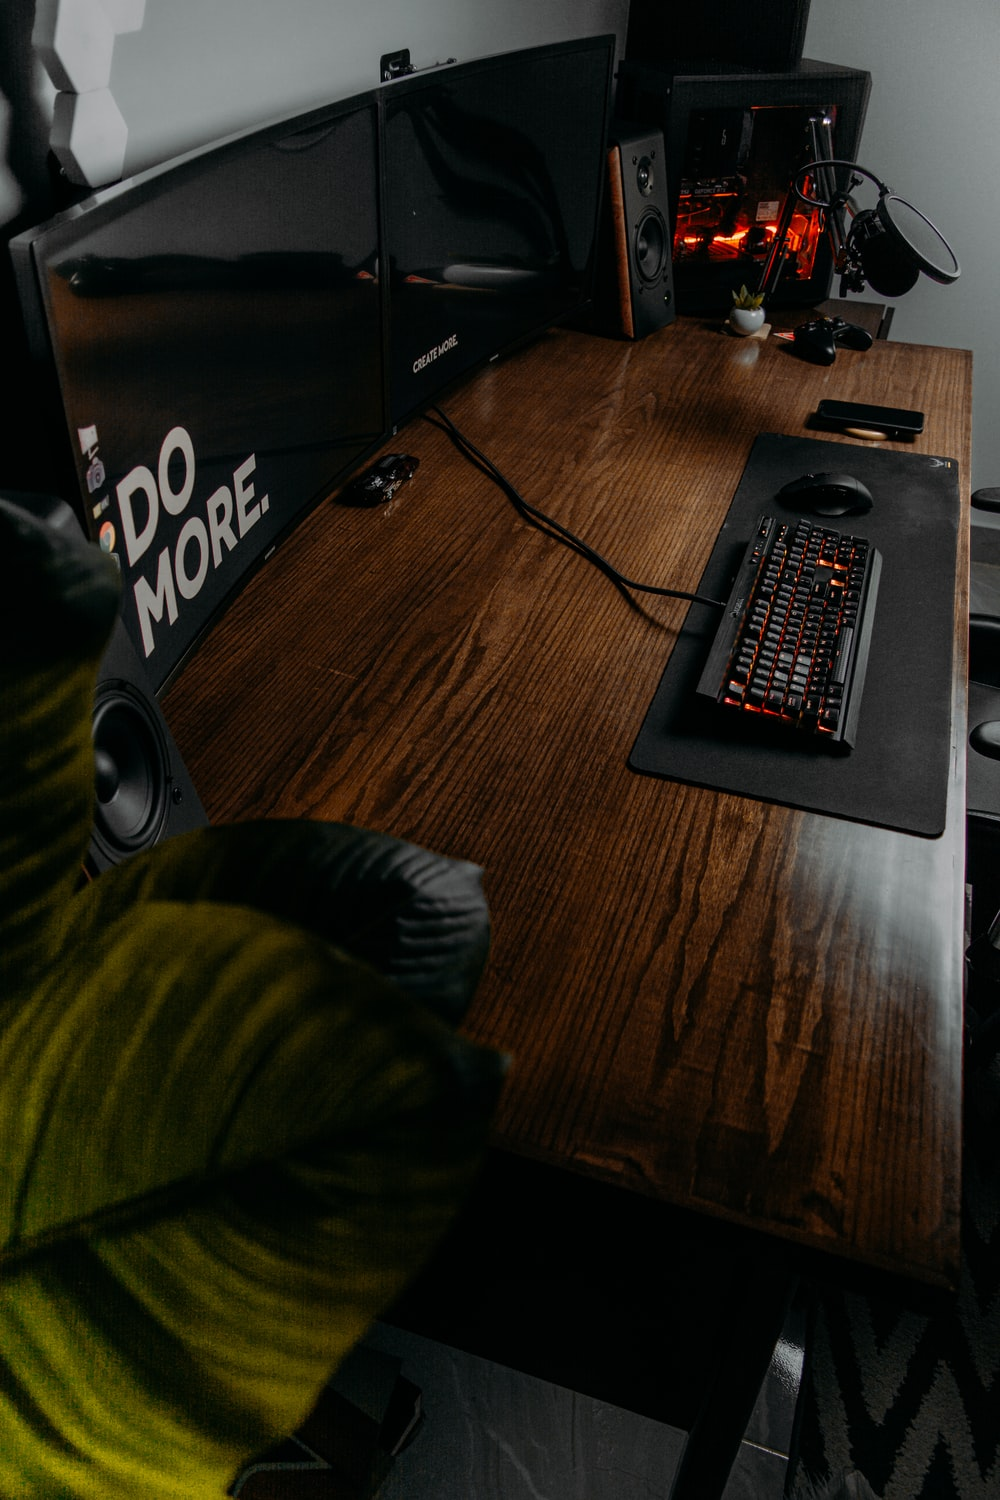 black and red computer keyboard on brown wooden table